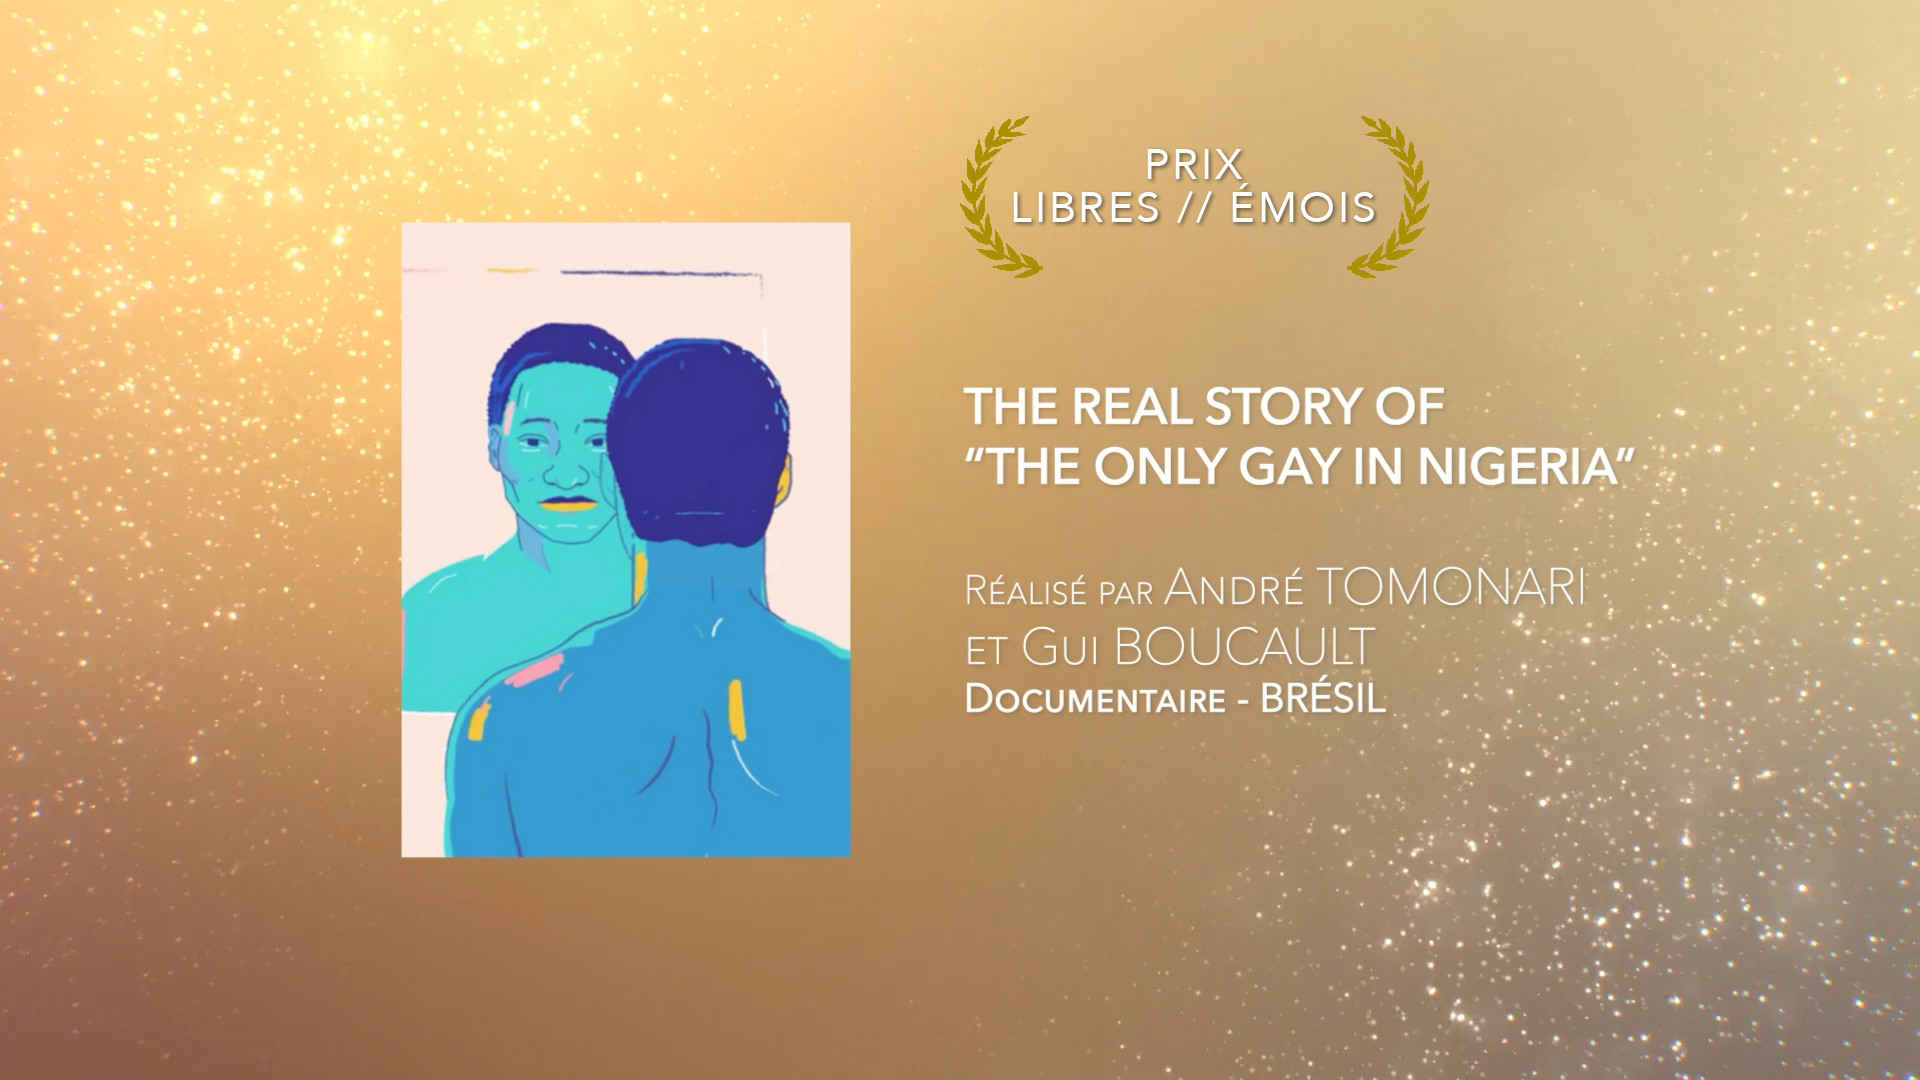 THE REAL STORY OF THE ONLY GAY IN NIGERI